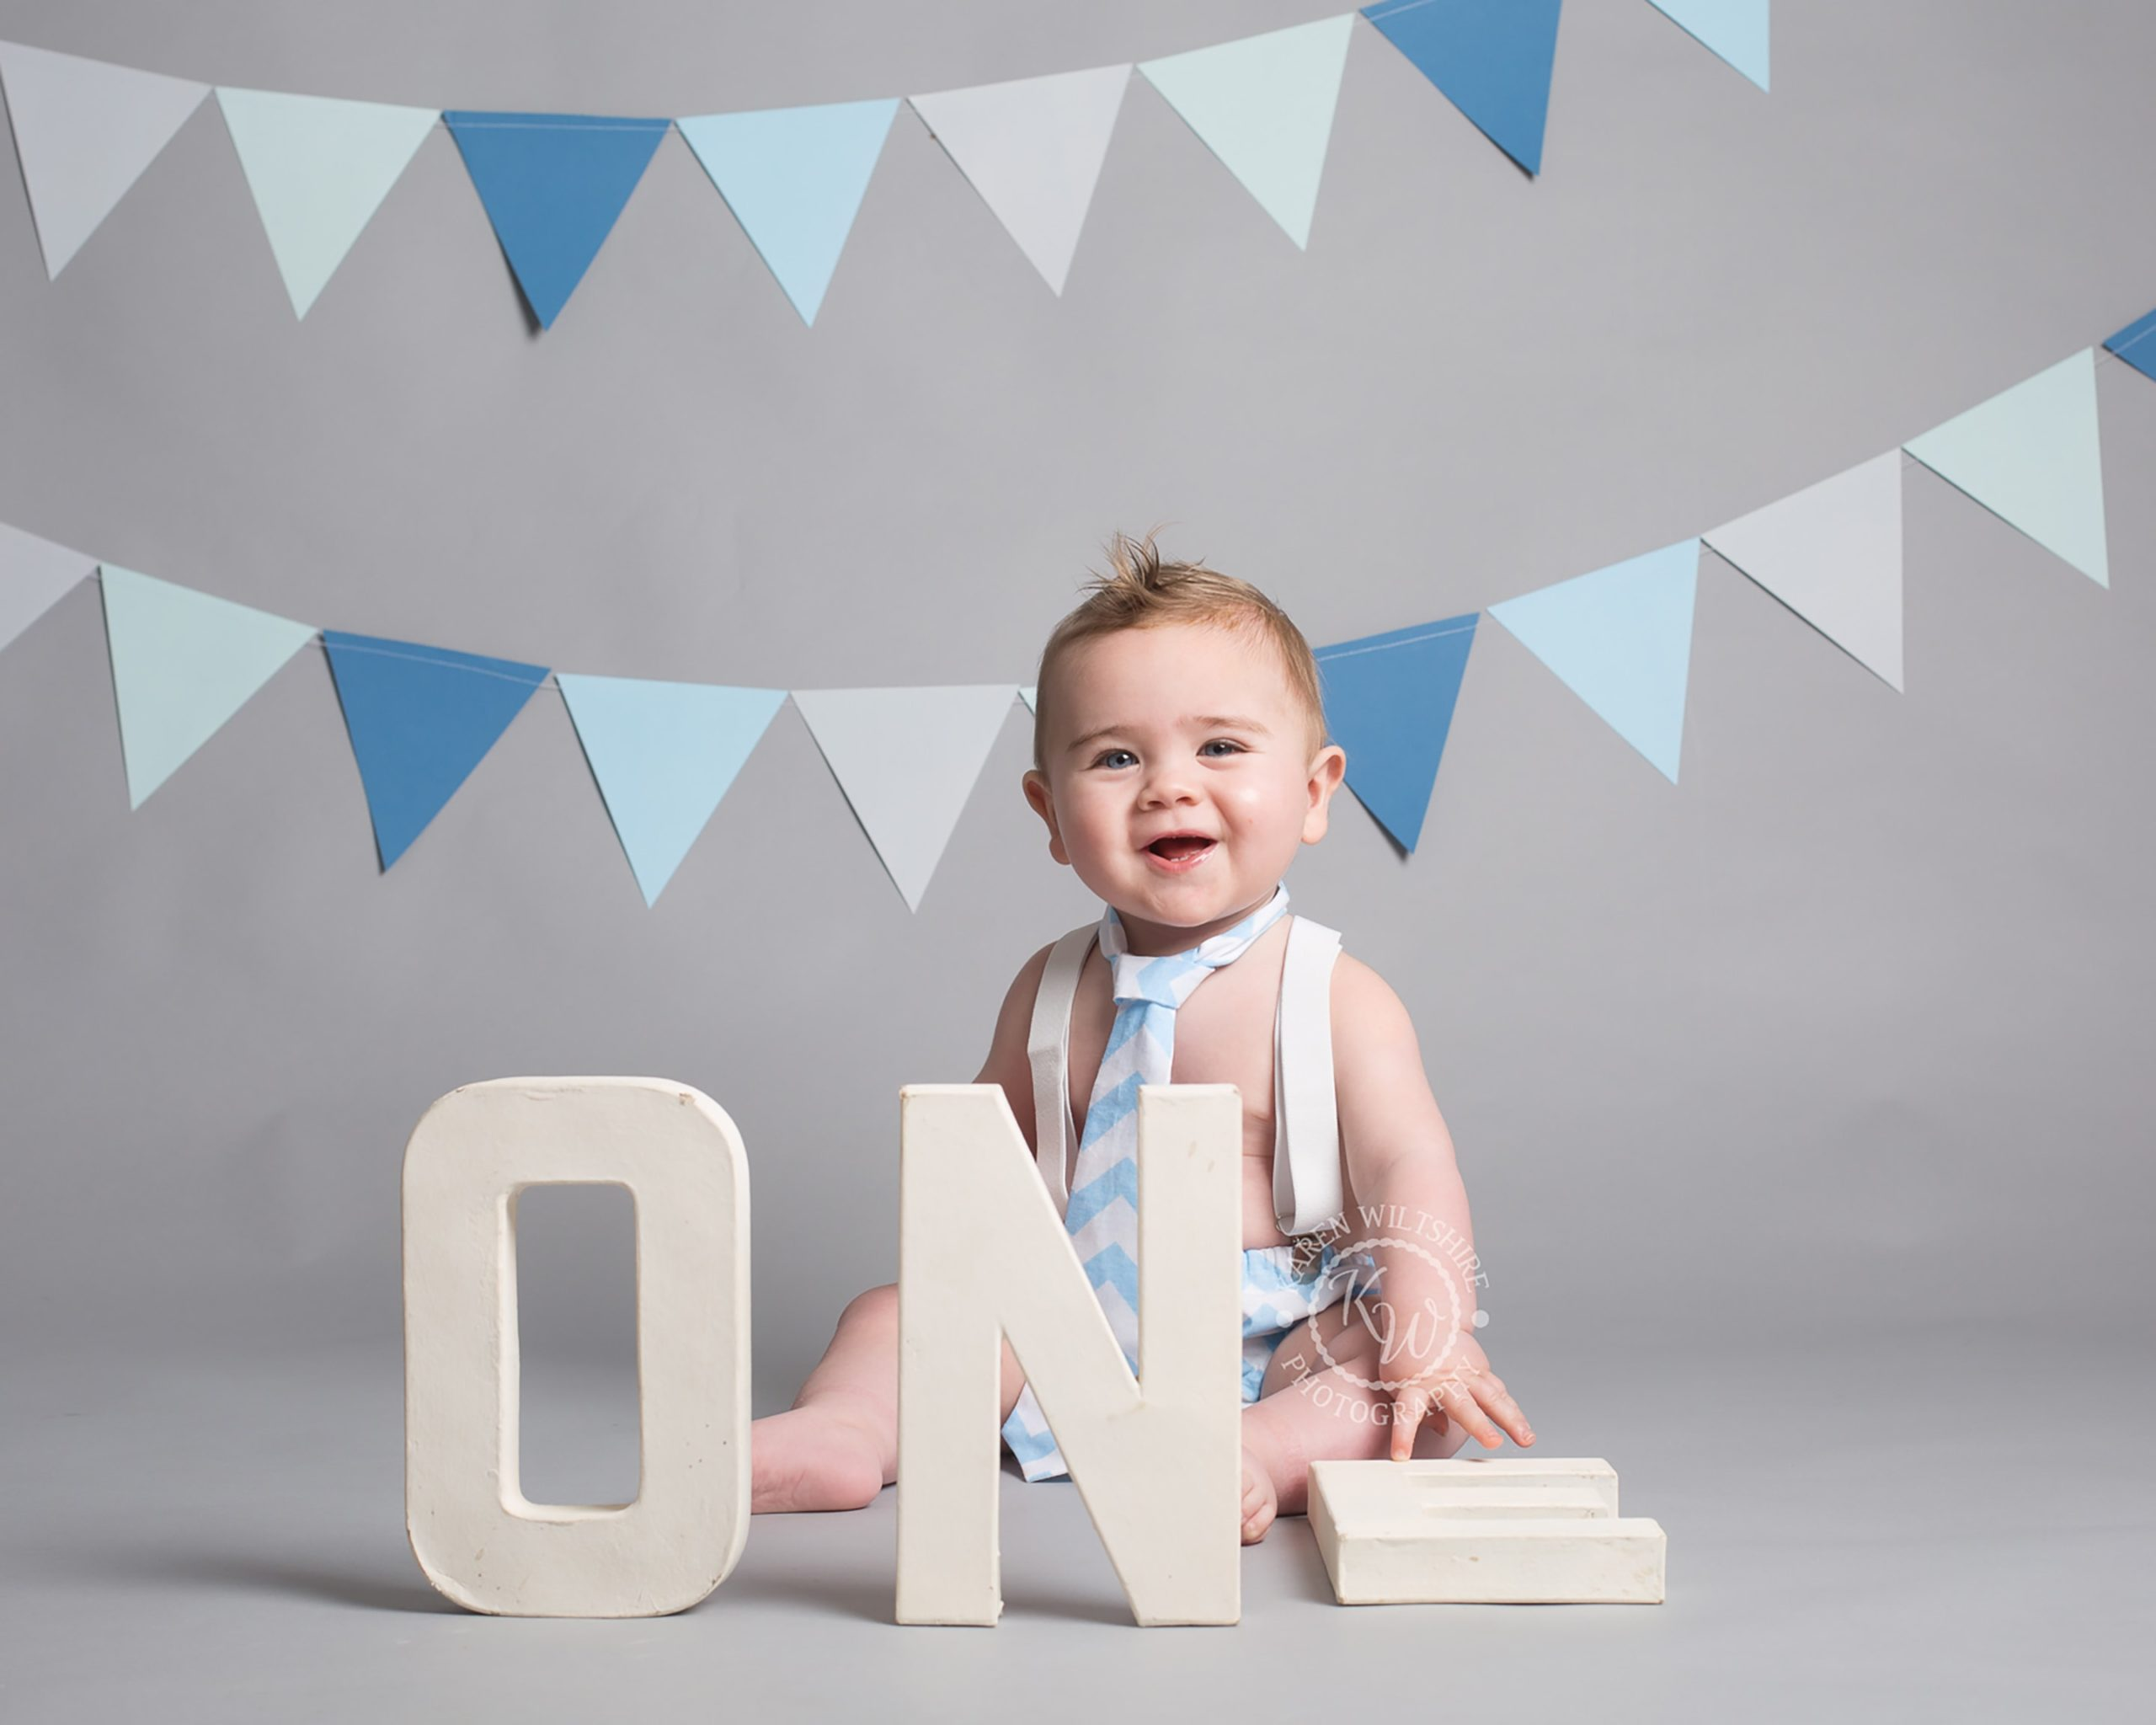 Baby hold letters ONE for photo